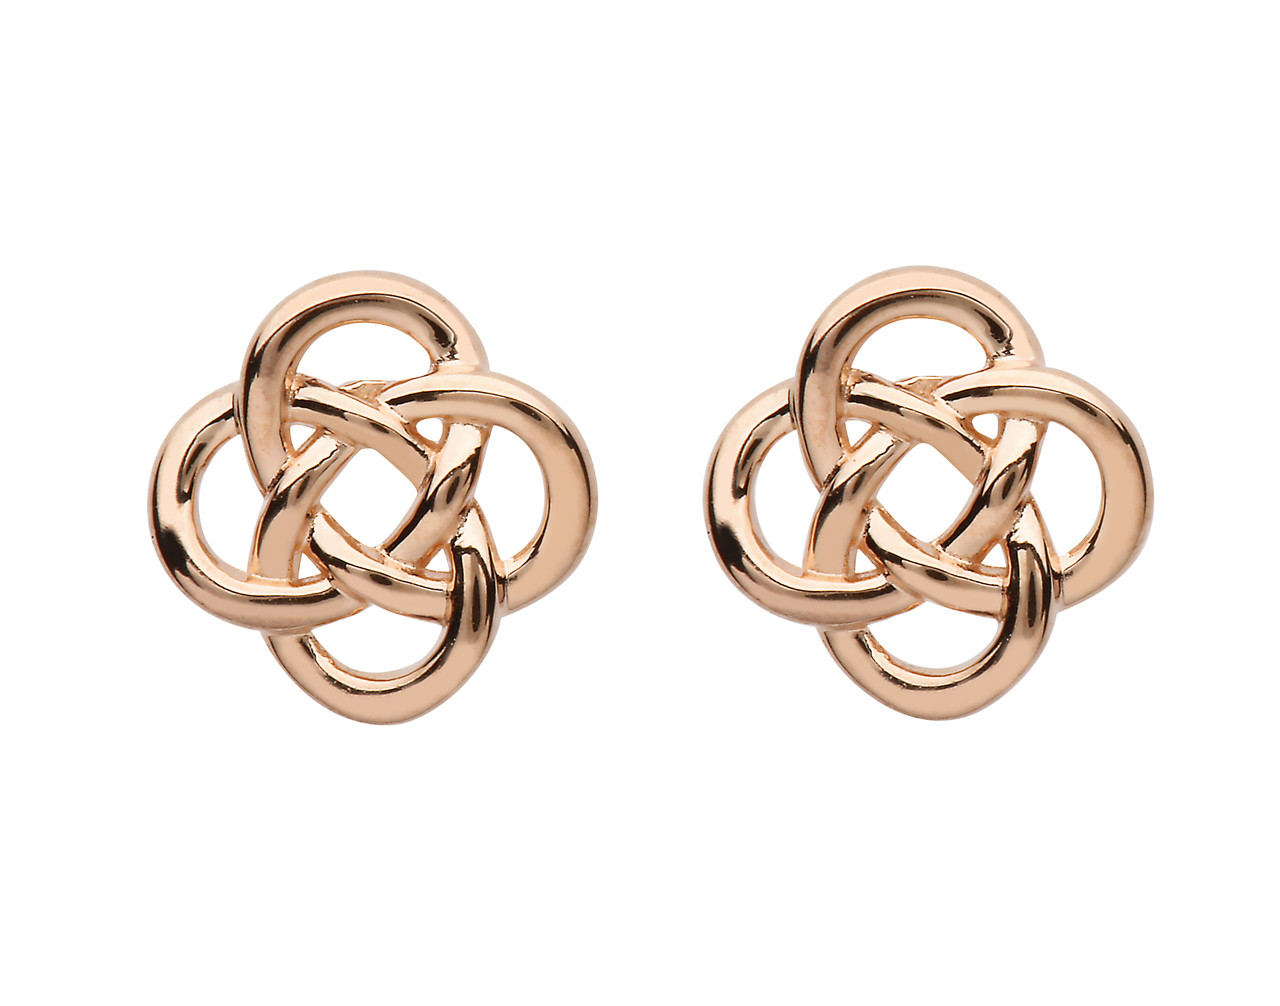 06d6d914a Rose Gold Plated Sterling Silver Celtic Knot Stud Earrings - The ...